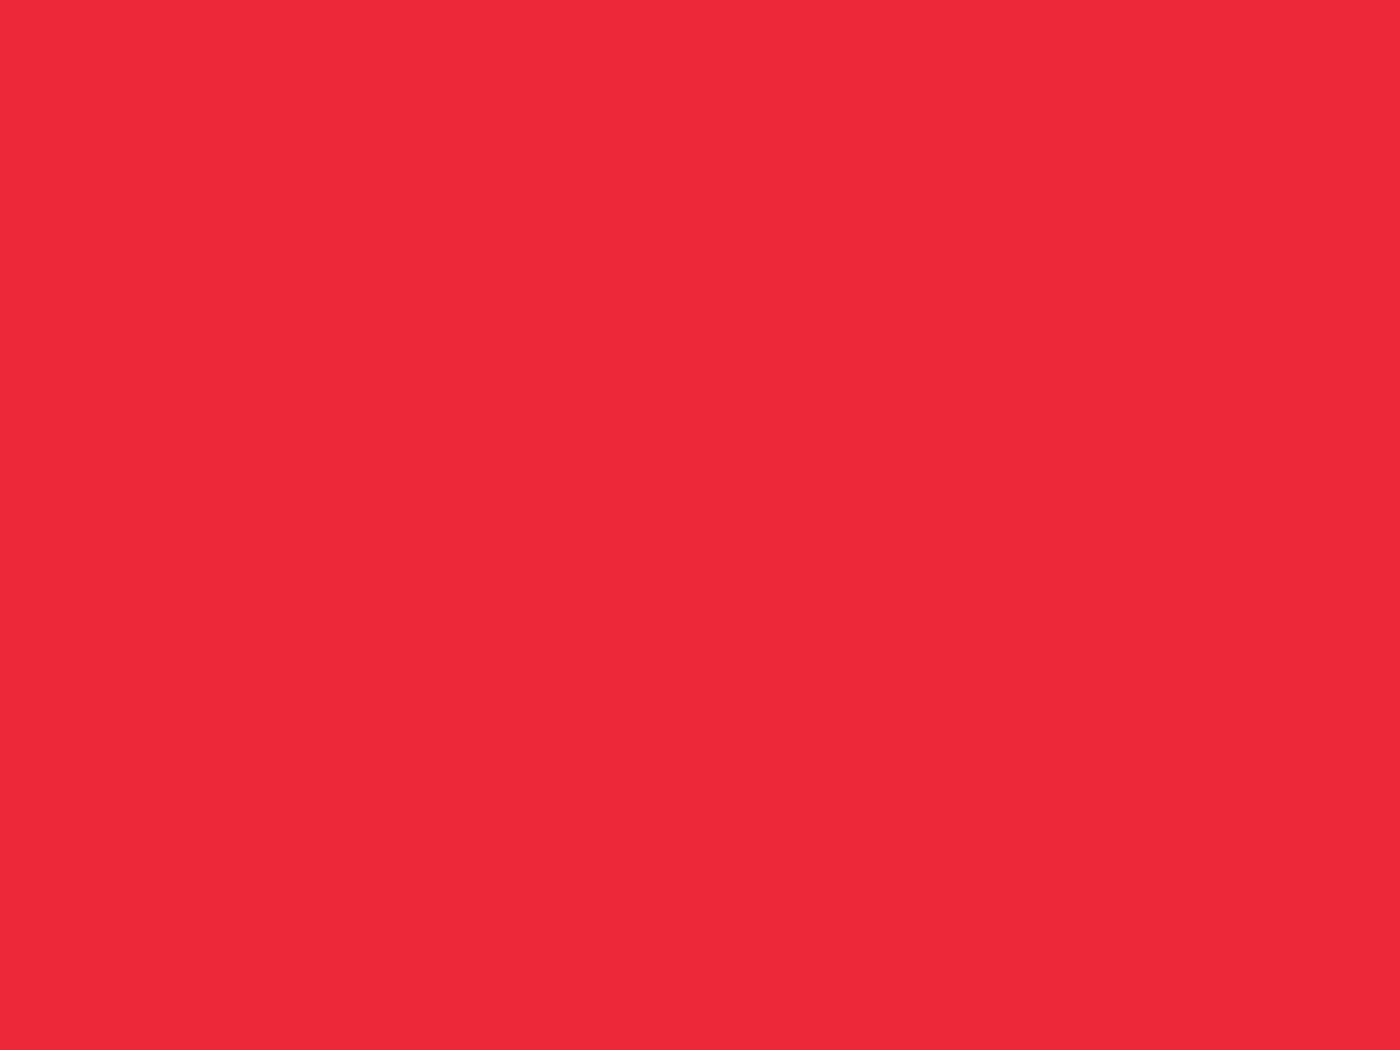 1400x1050 Red Pantone Solid Color Background